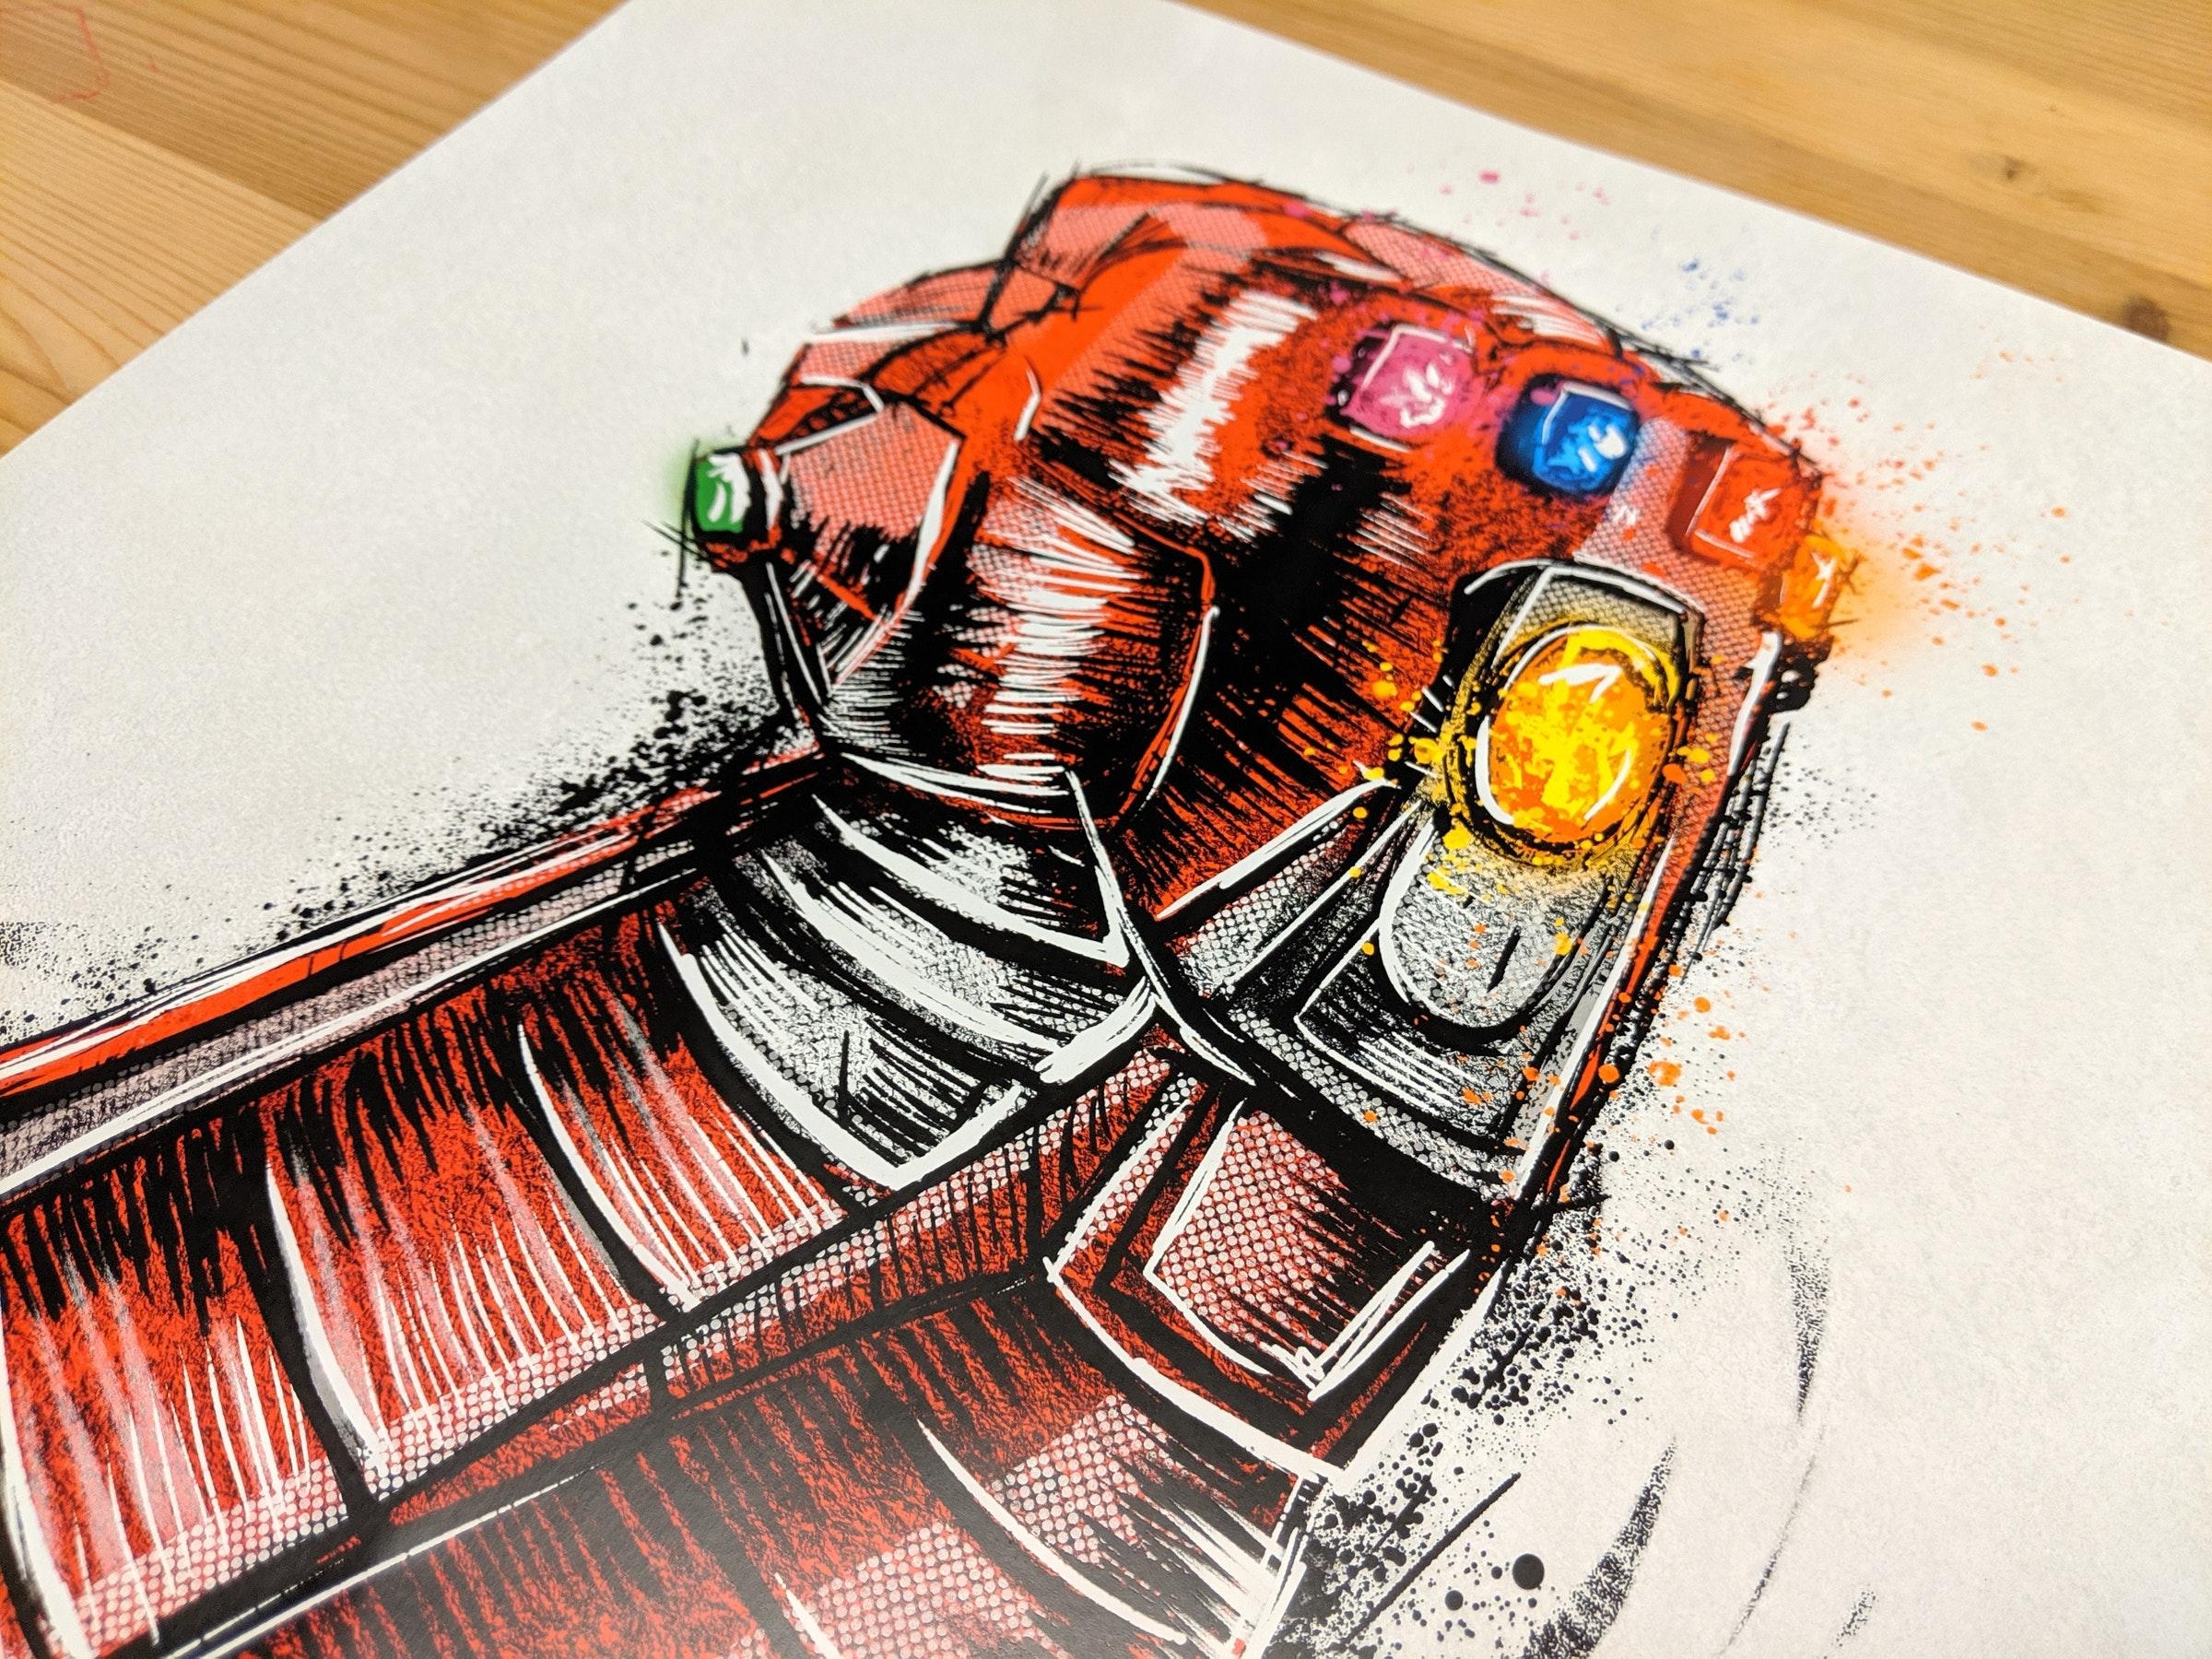 The Avengers, Illustration, Design, Graphics, Graphic design, Poster, Film, Clint Barton, Product design, Automotive design, design, Illustration, Art, Drawing, Graphic design, Sketch, Watercolor paint, Visual arts, Graphics, Artwork, Paint